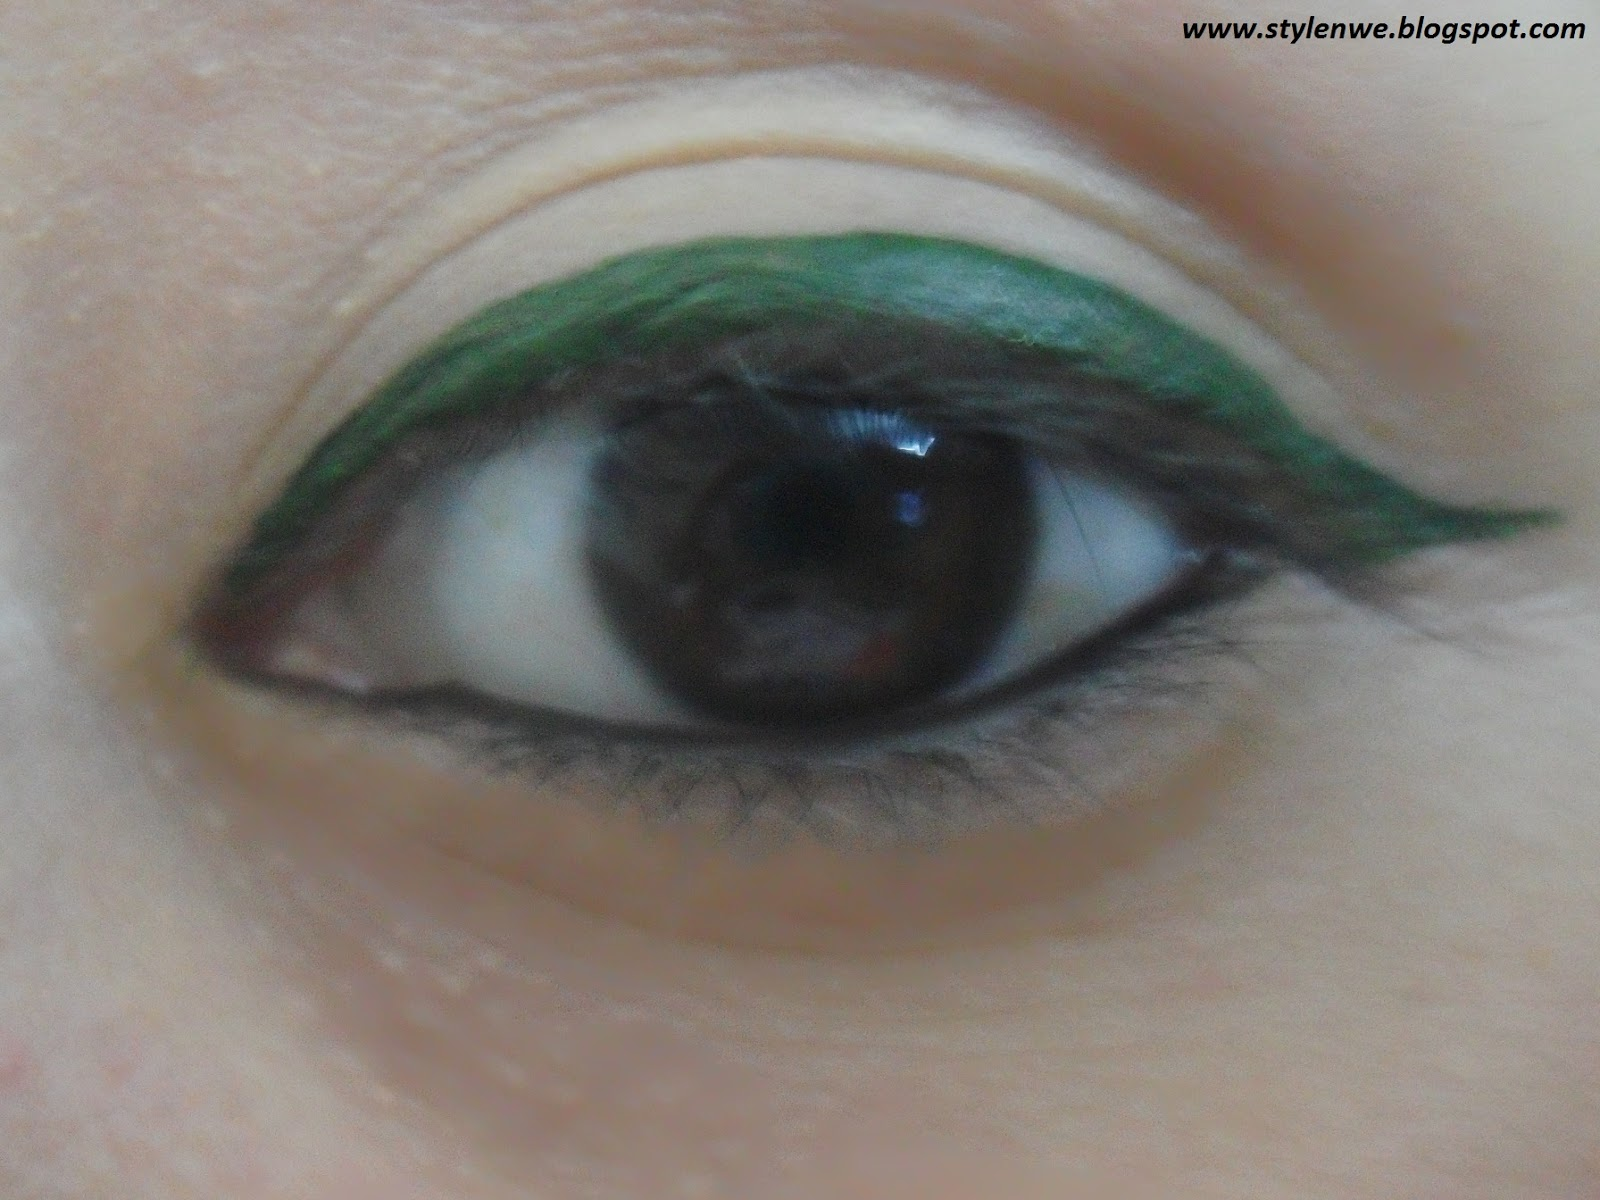 Maybelline Hyper Glossy Liquid Liner Khaki Review Swatches Black Eyeliner What I Love About